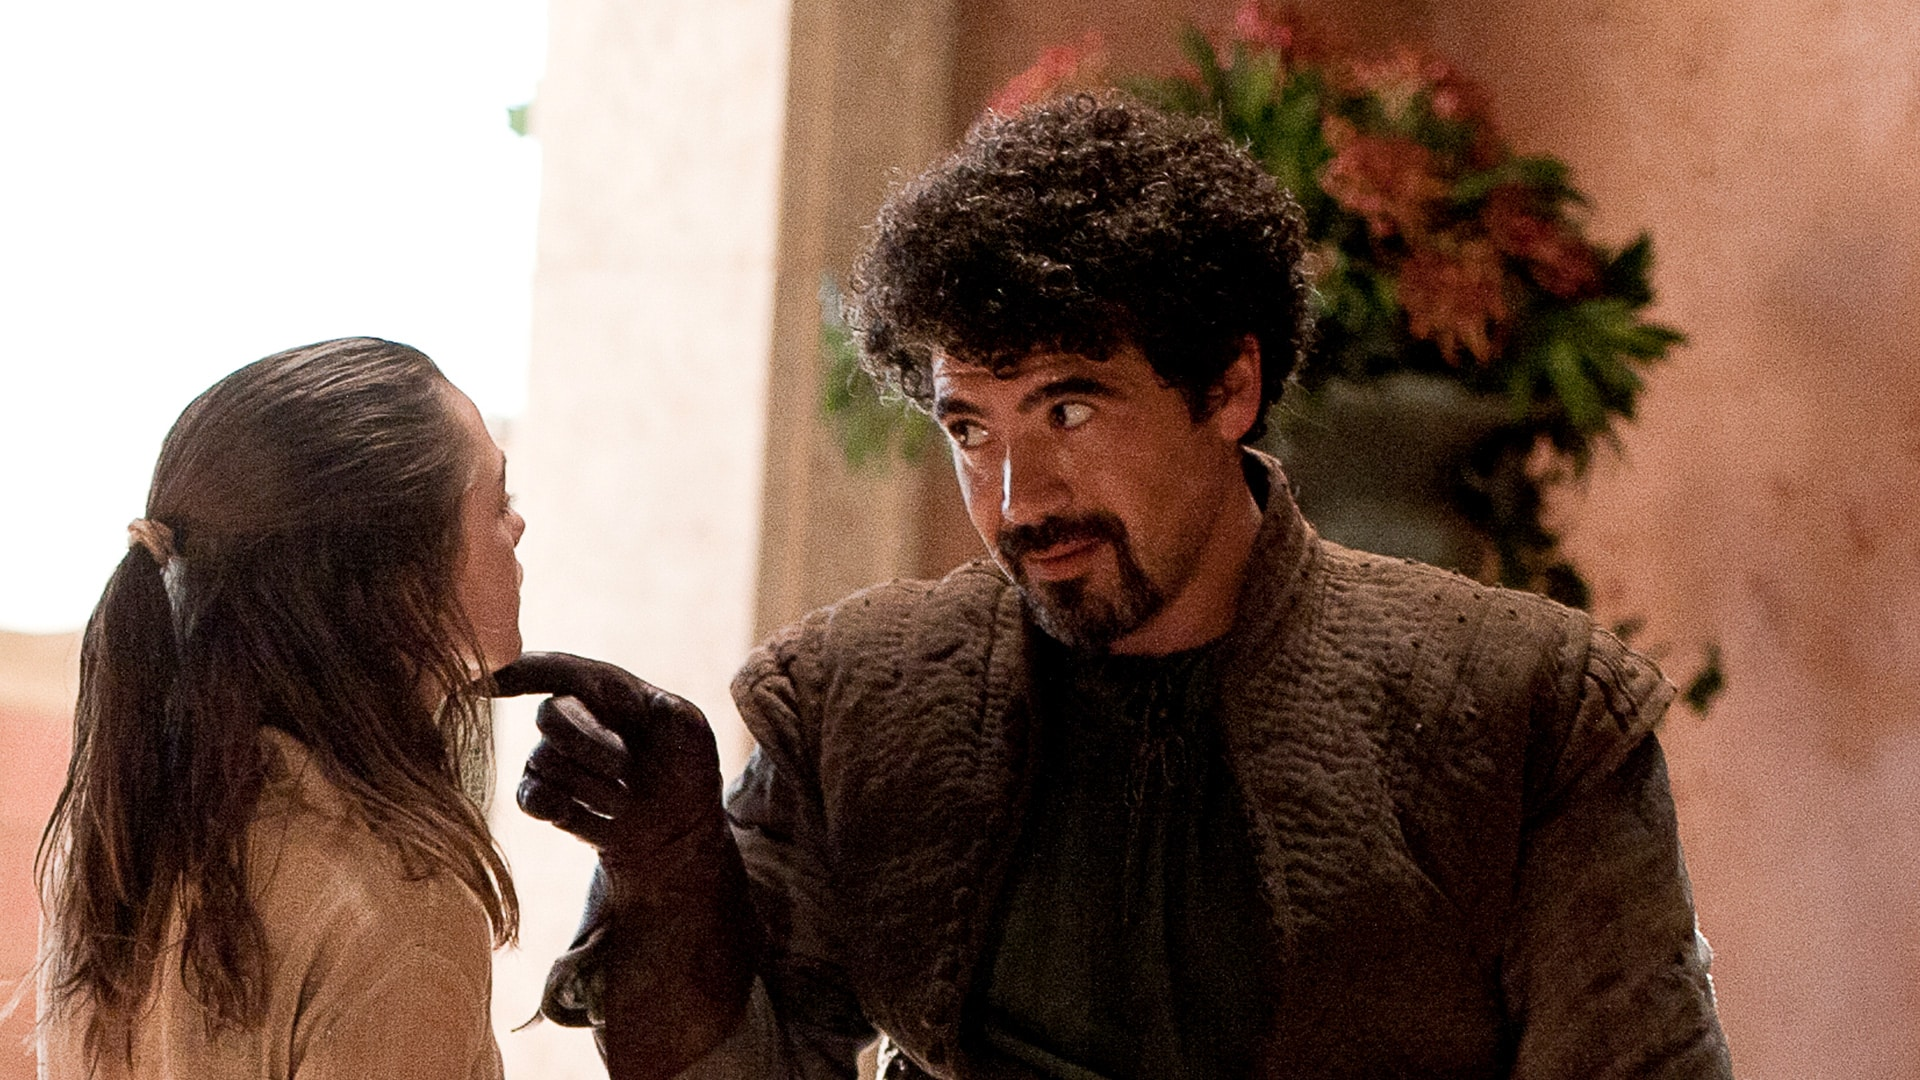 Syrio Forel - VR Training